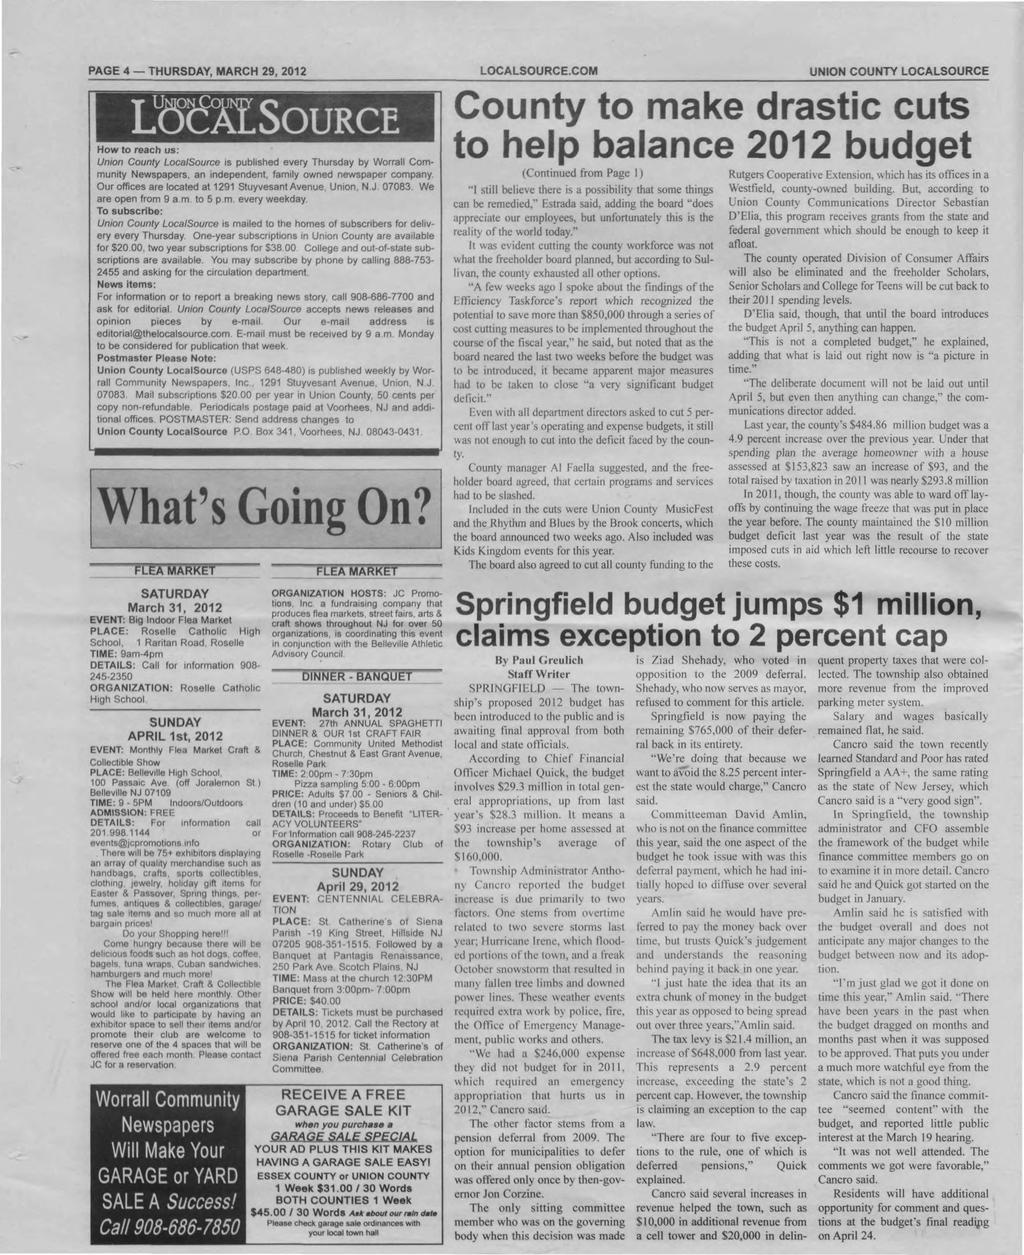 County Expects To Layoff 10 Of Work Force Pdf En Ji By Palomino Ashlee Wallet M Page 4 Thursday March 29 2012 Localsource